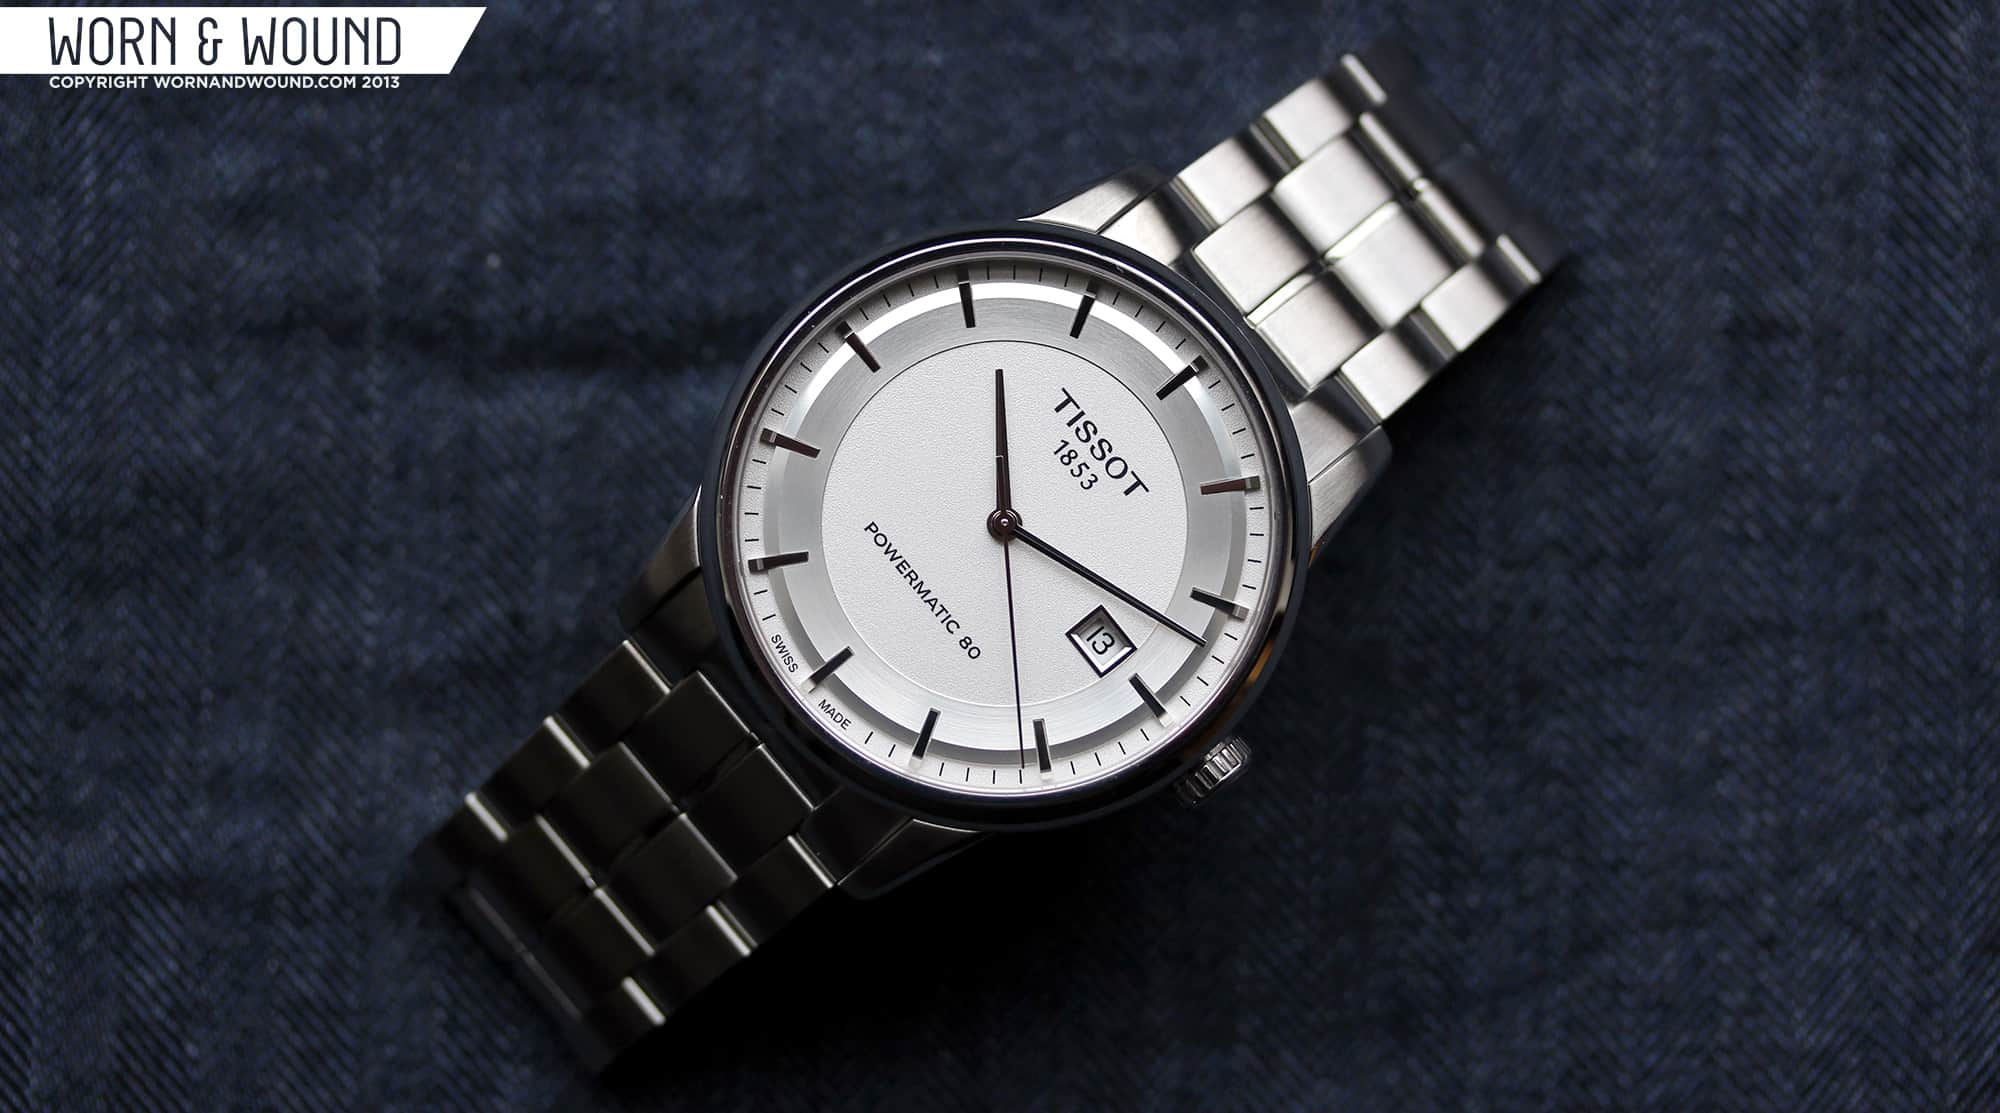 Tissot Luxury Automatic Powermatic 80 Review Worn Wound